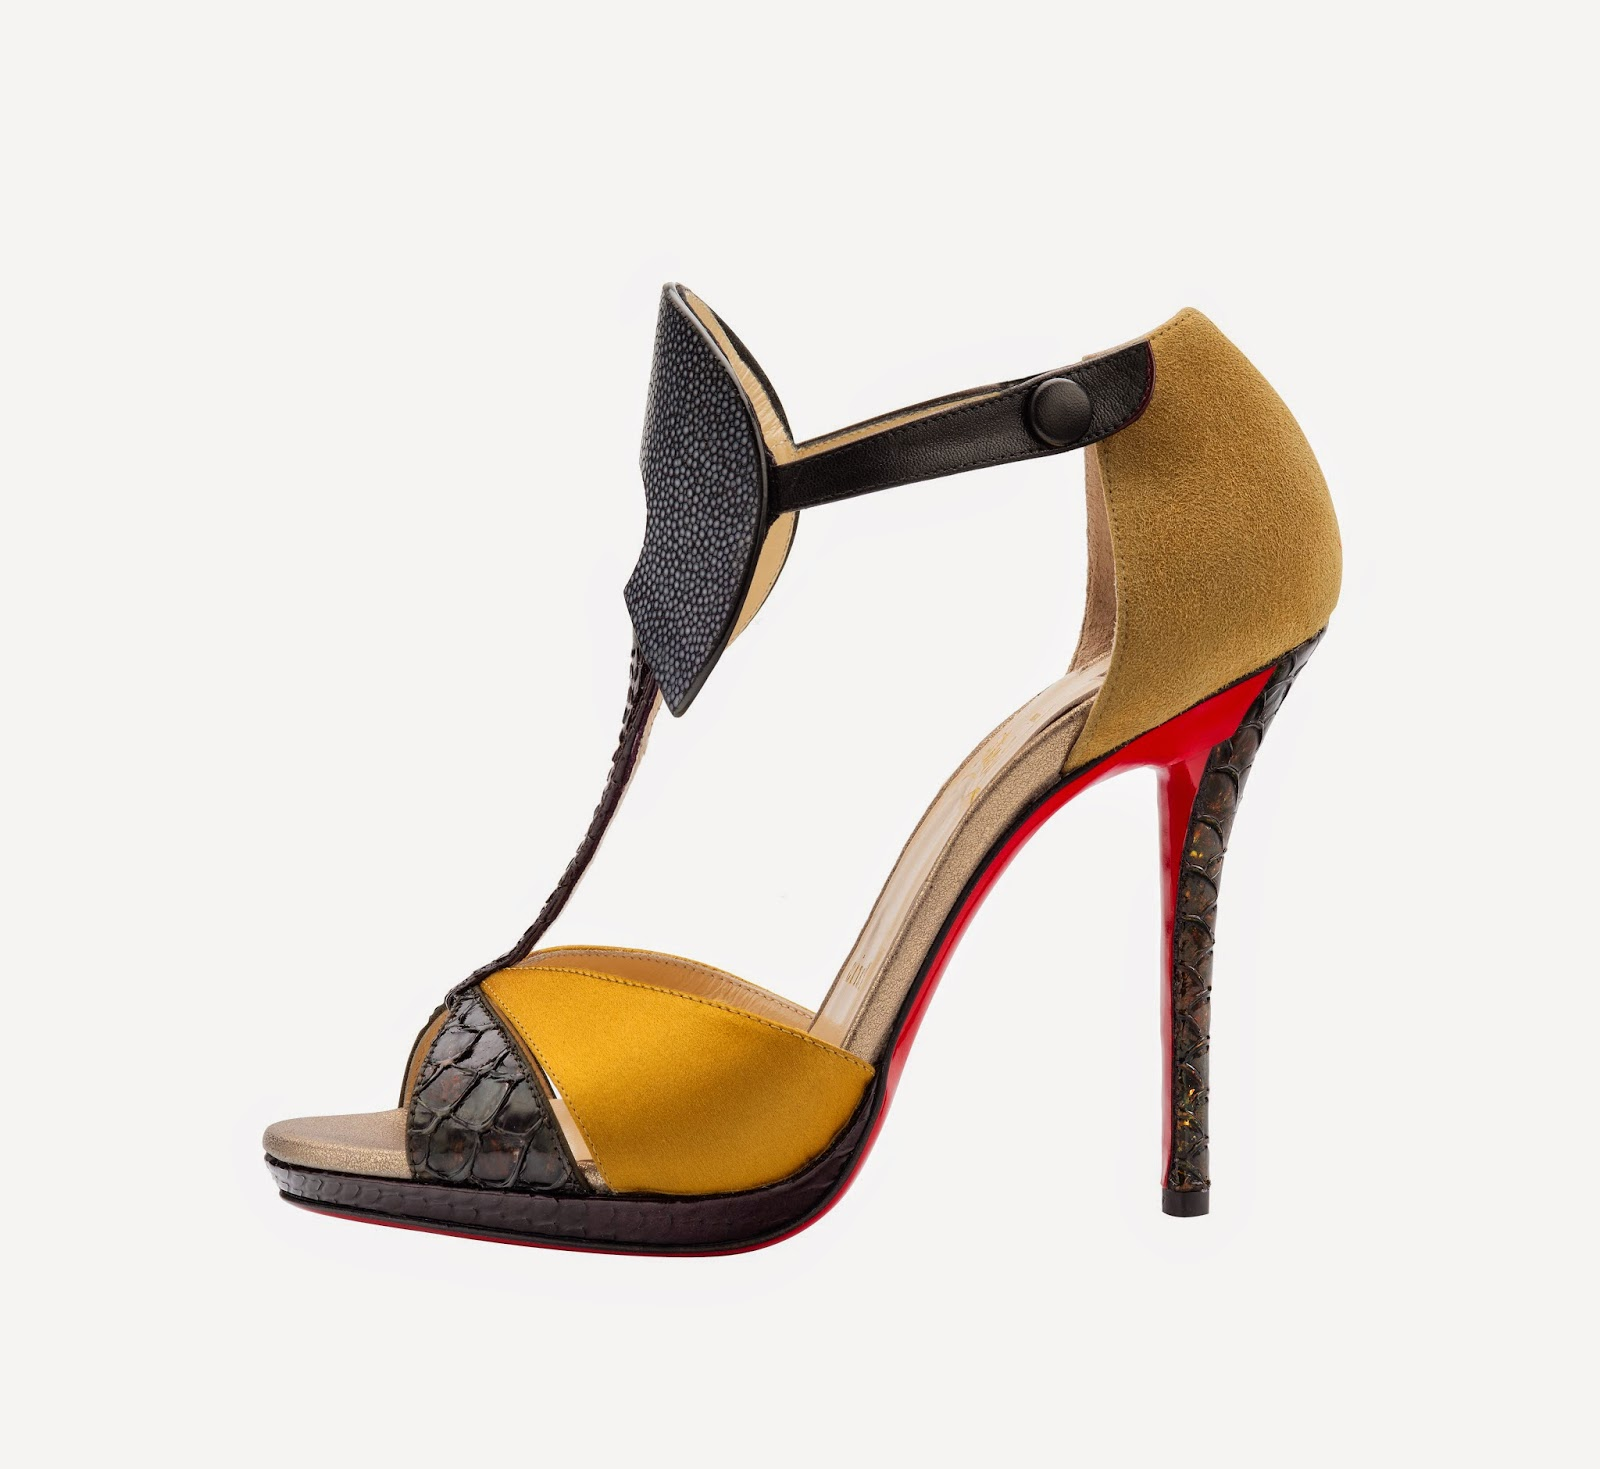 Christian Louboutin Aztec 120 Guache Satin Version Multi